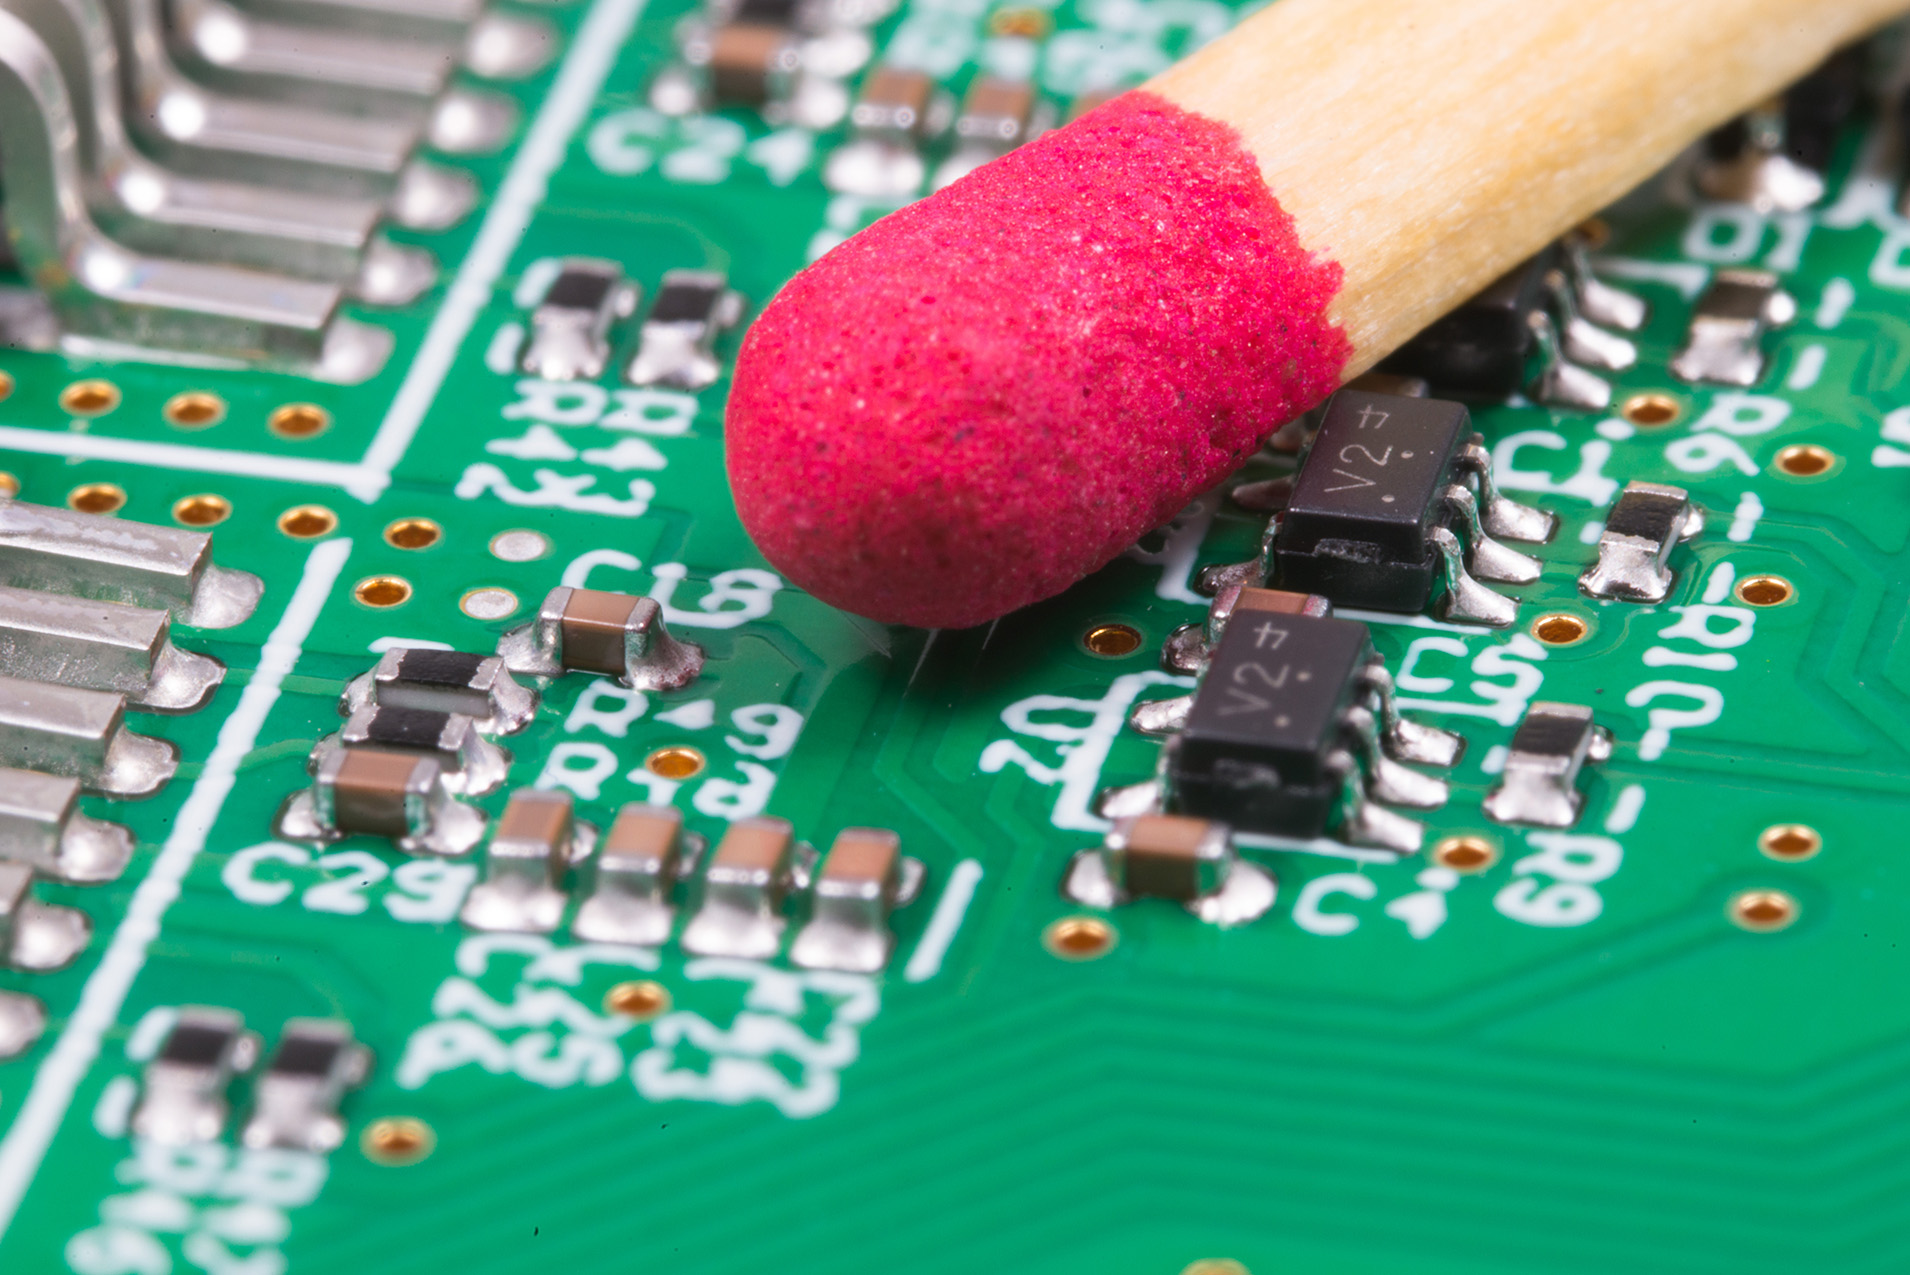 Applying micro components on the PCB makes the modules more cost-effective